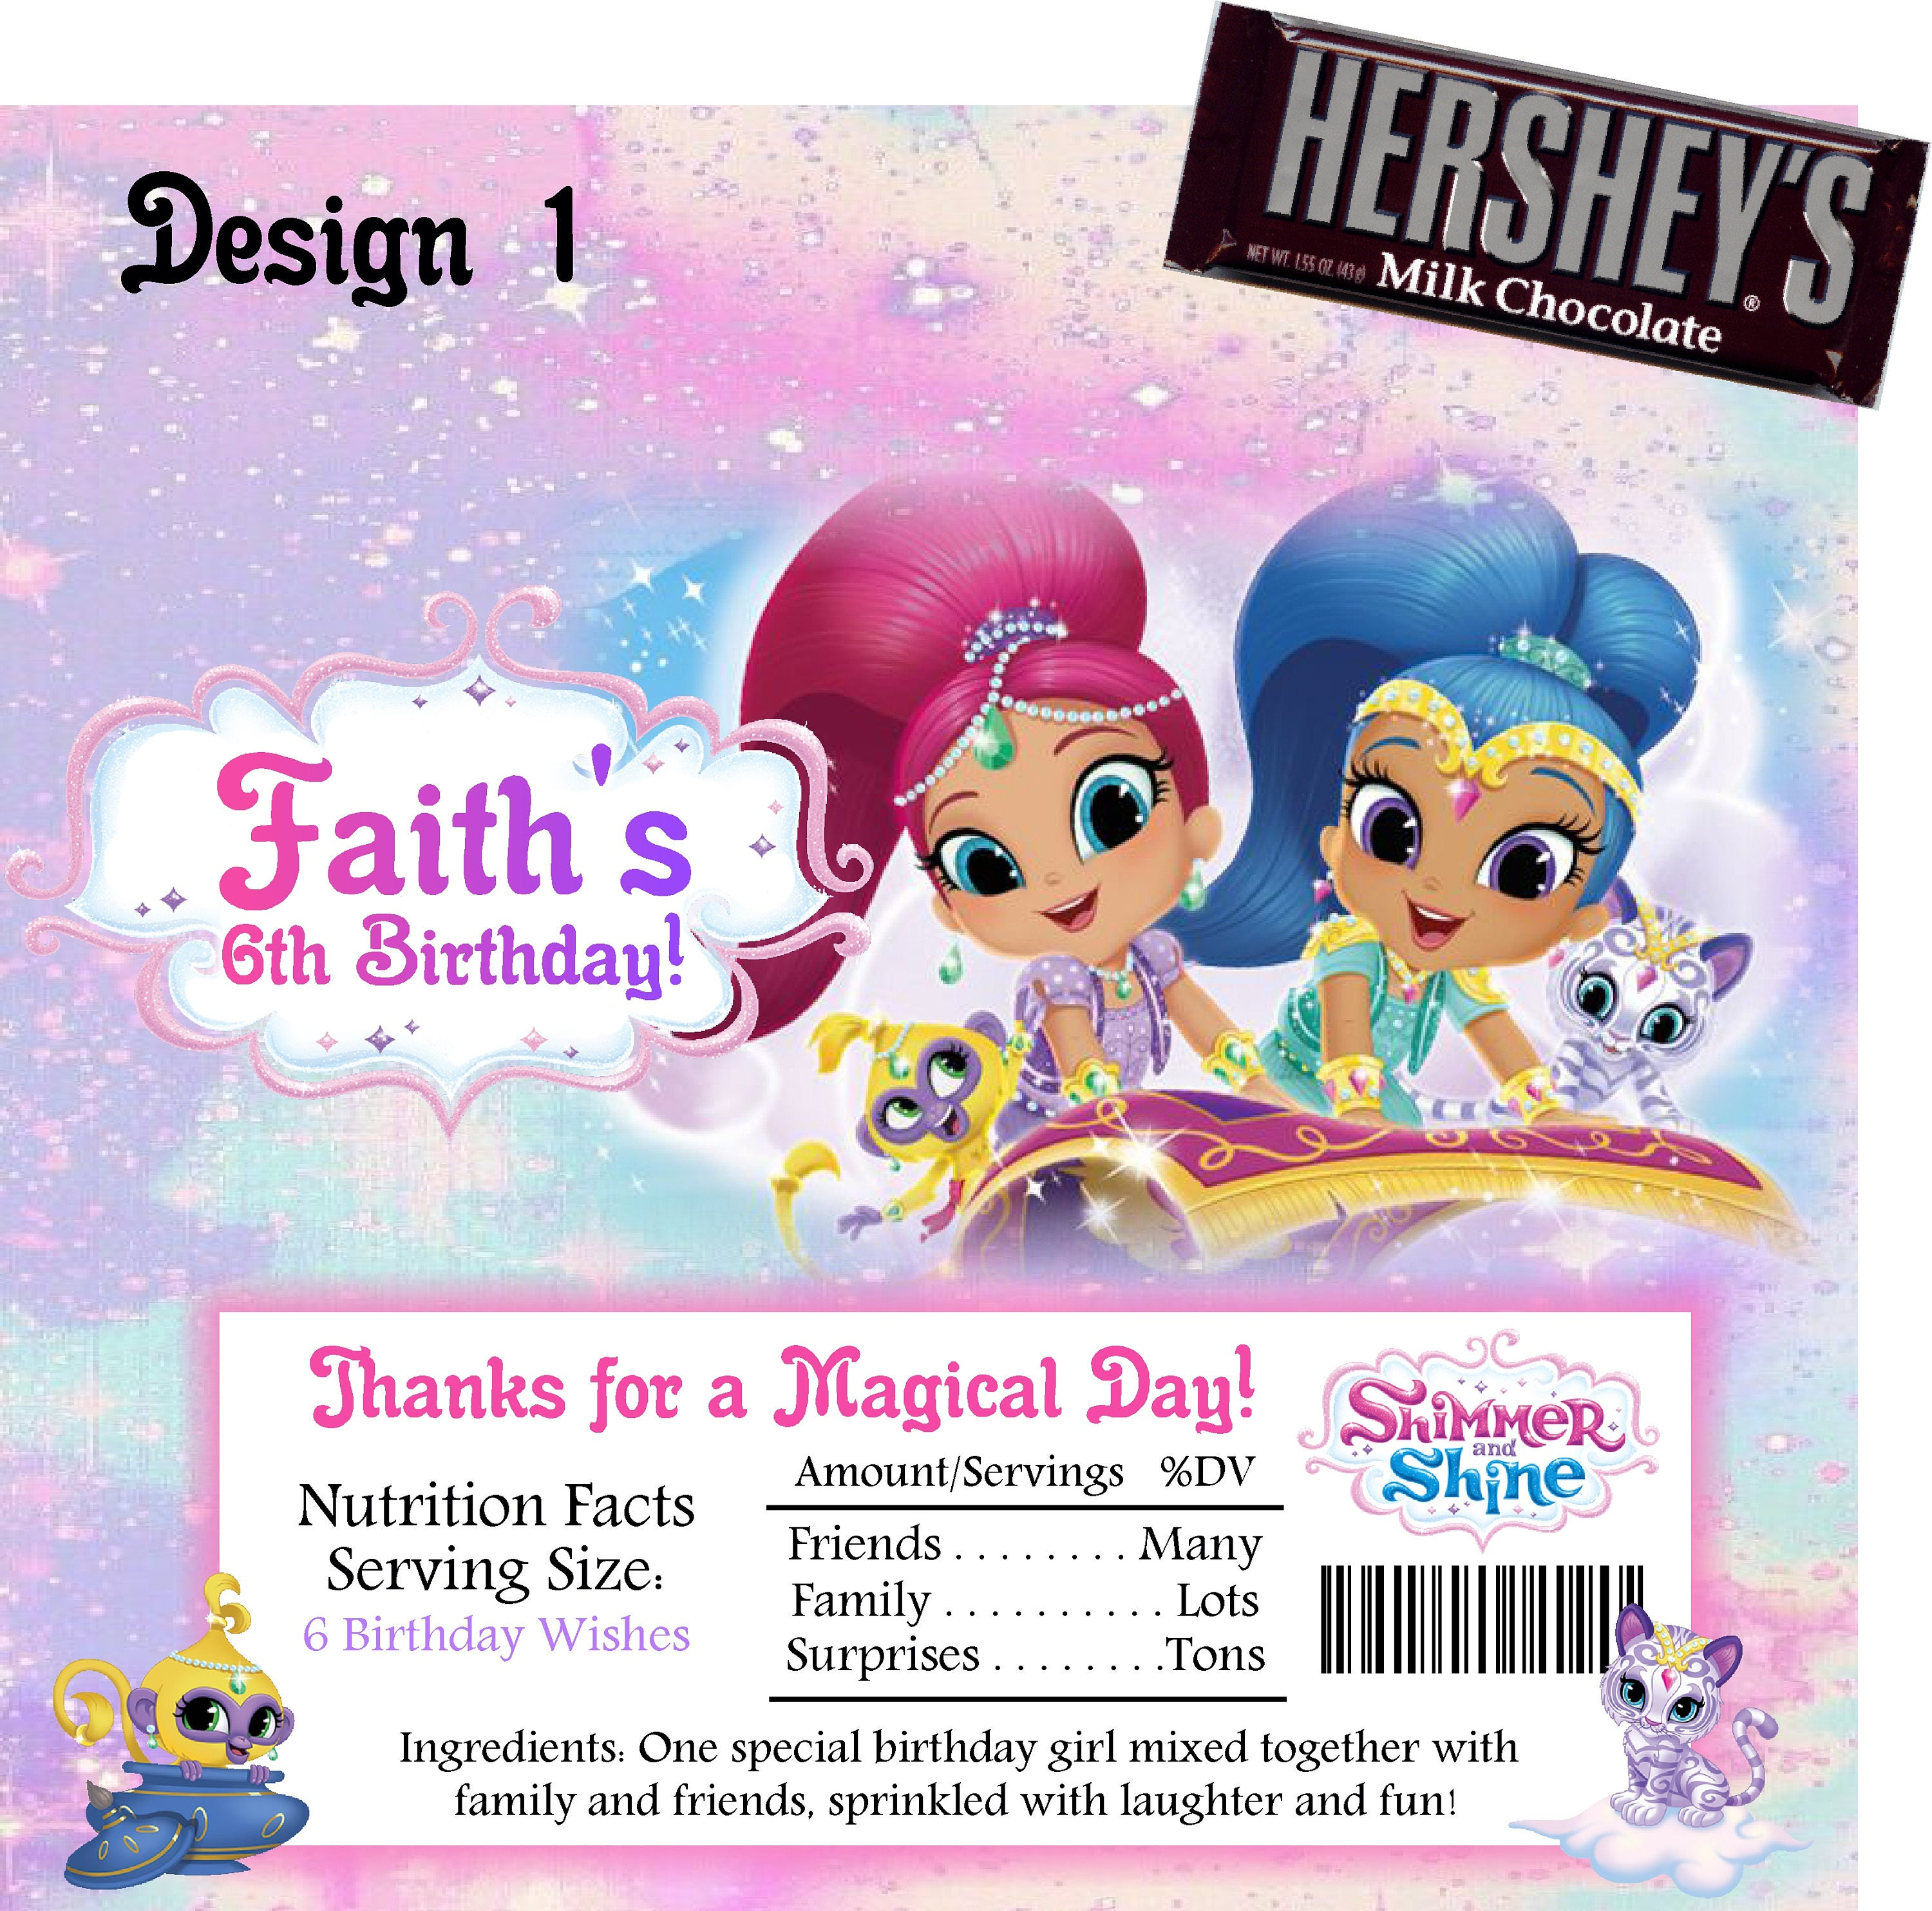 Printable Shimmer and Shine Candy Bar Wrappers Fits 1.55 Oz